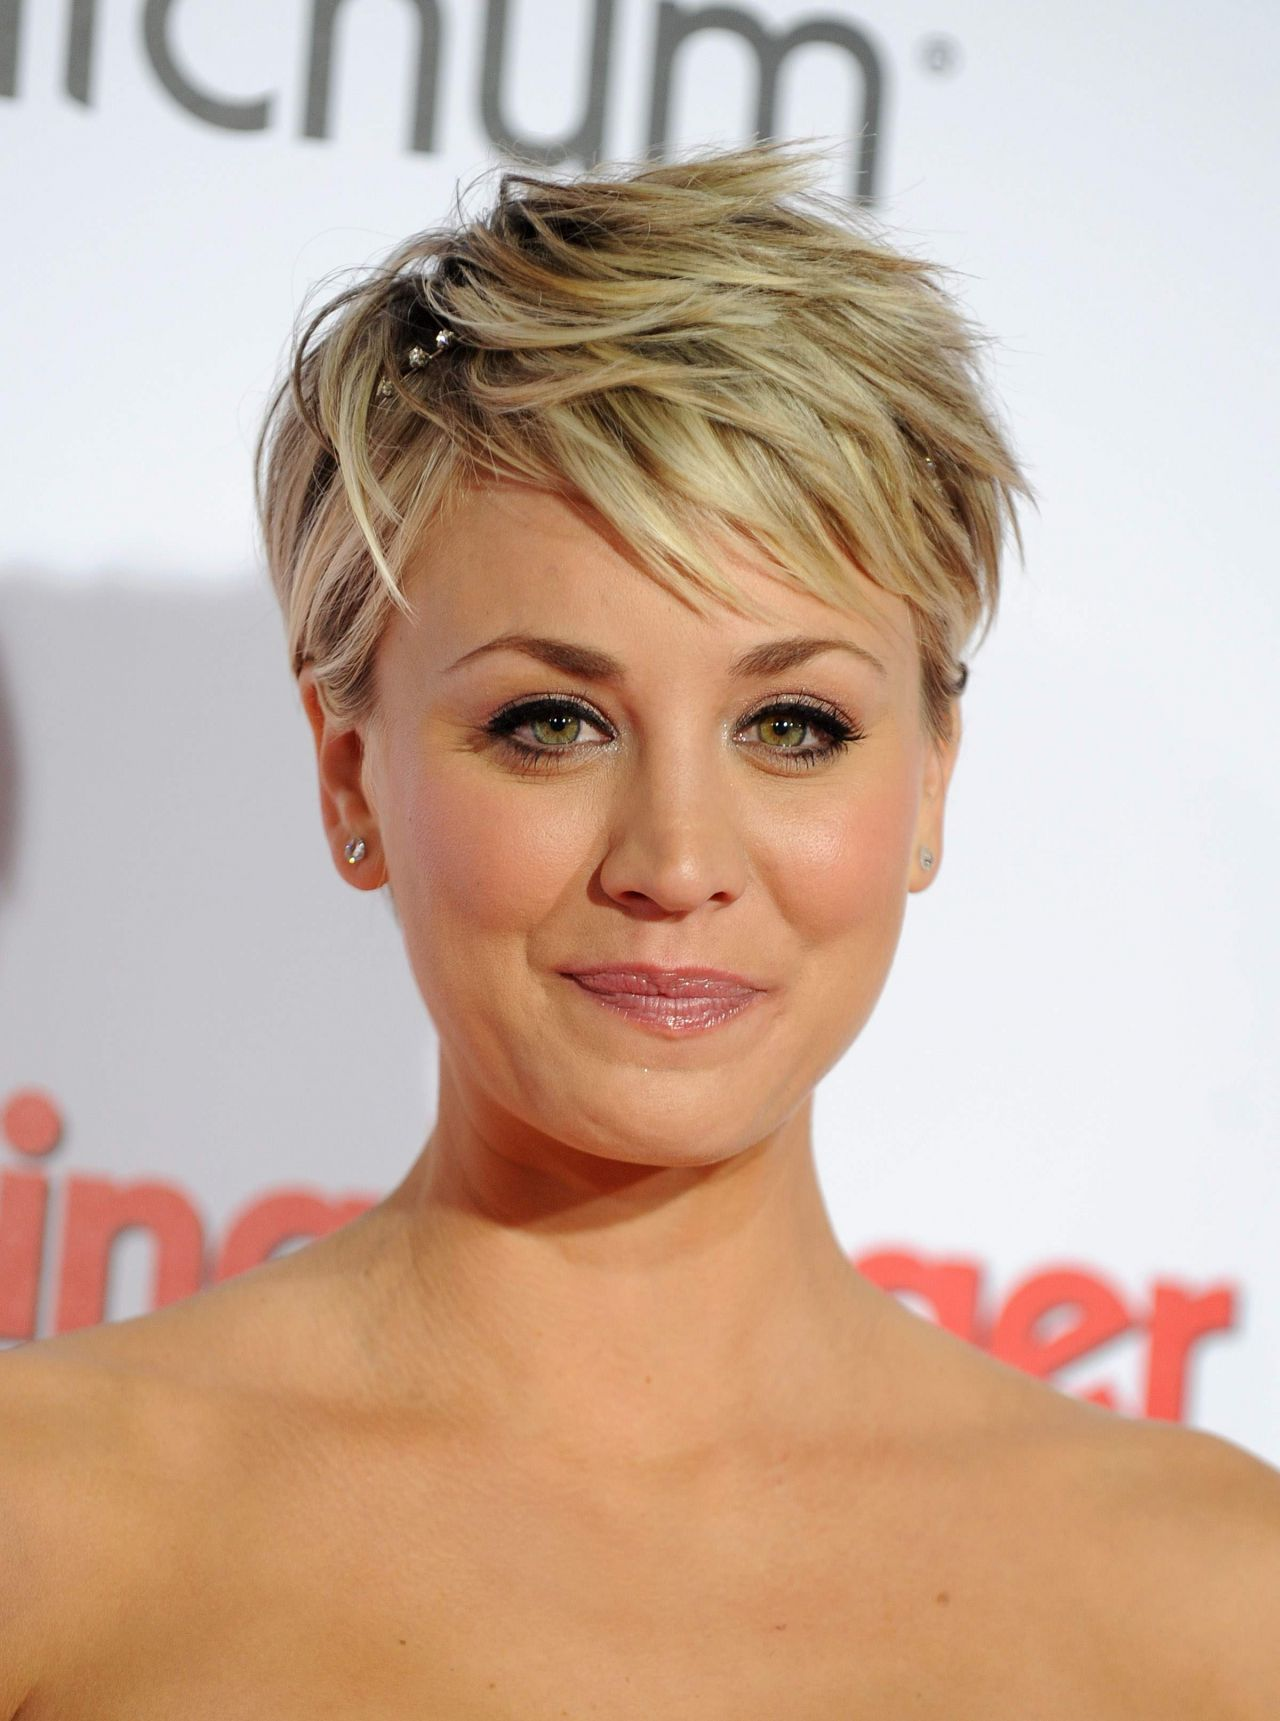 Kaley Cuoco The Wedding Ringer Premiere In Hollywood